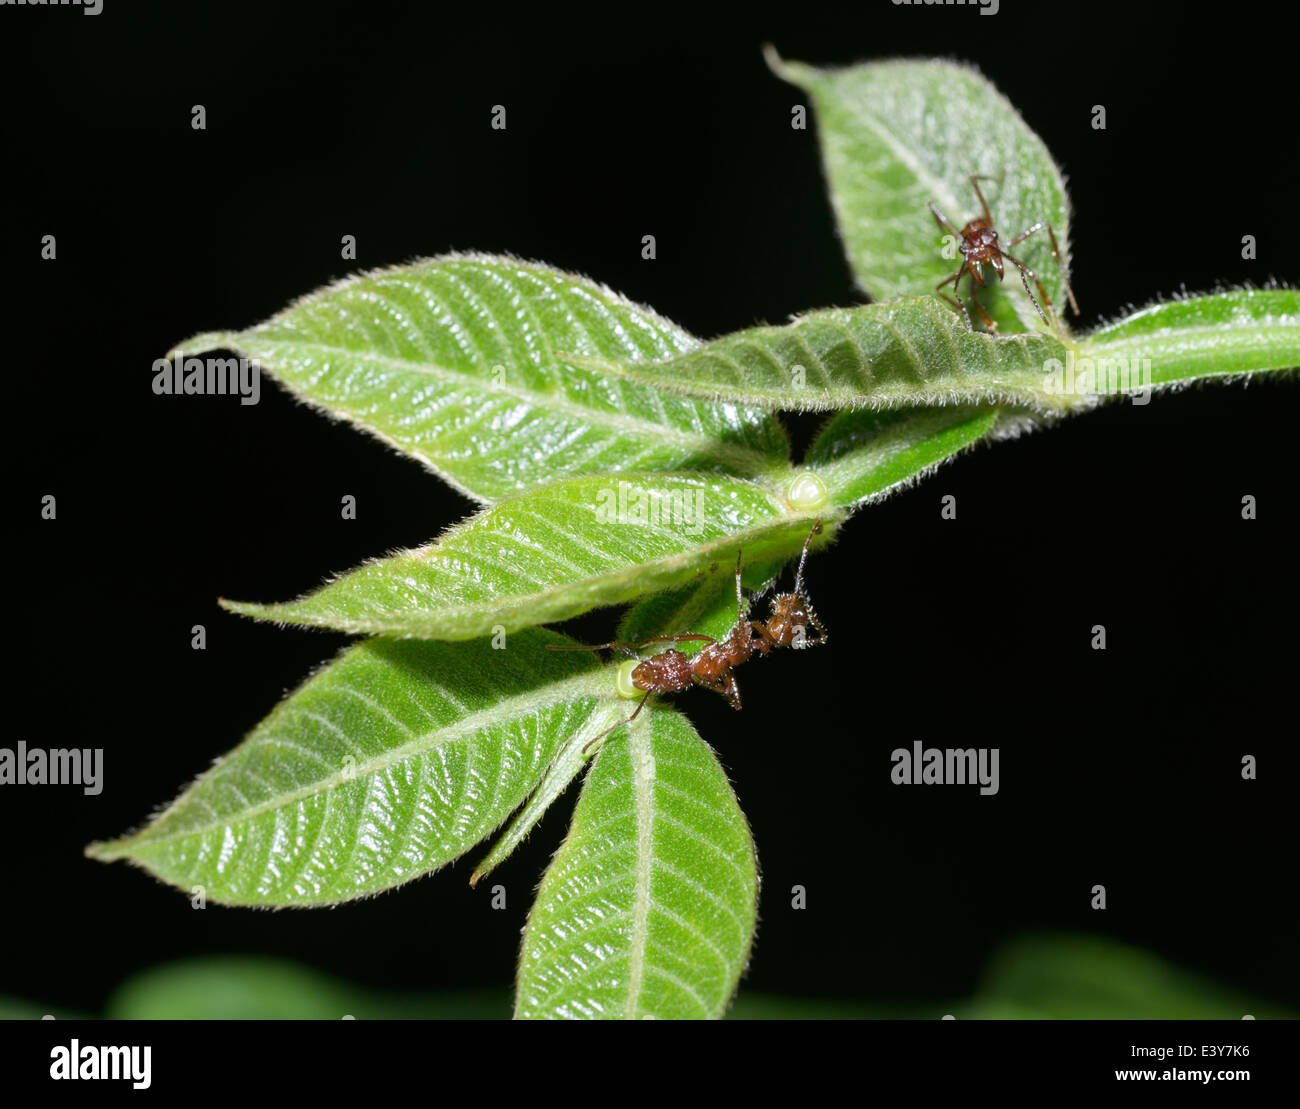 Symbiosis between ants, Azteca sp., and Inga plant that provides nectar in bowls visible at base of leaves - see - Stock Image